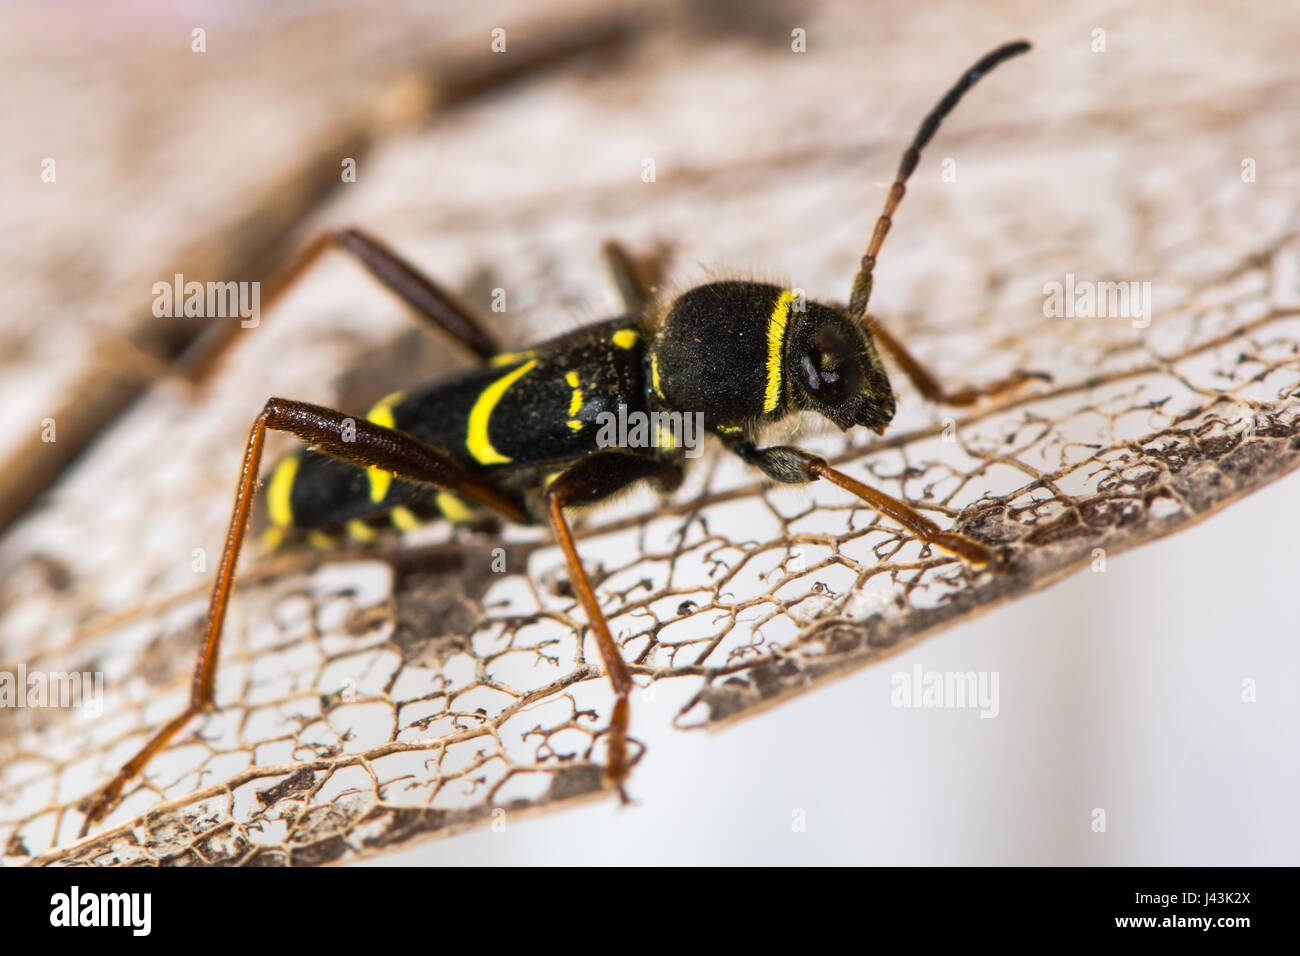 Wasp beetle (Clytus arietis). A striking yellow and black wasp mimic in the family Cerambycidae, displaying Batesian - Stock Image